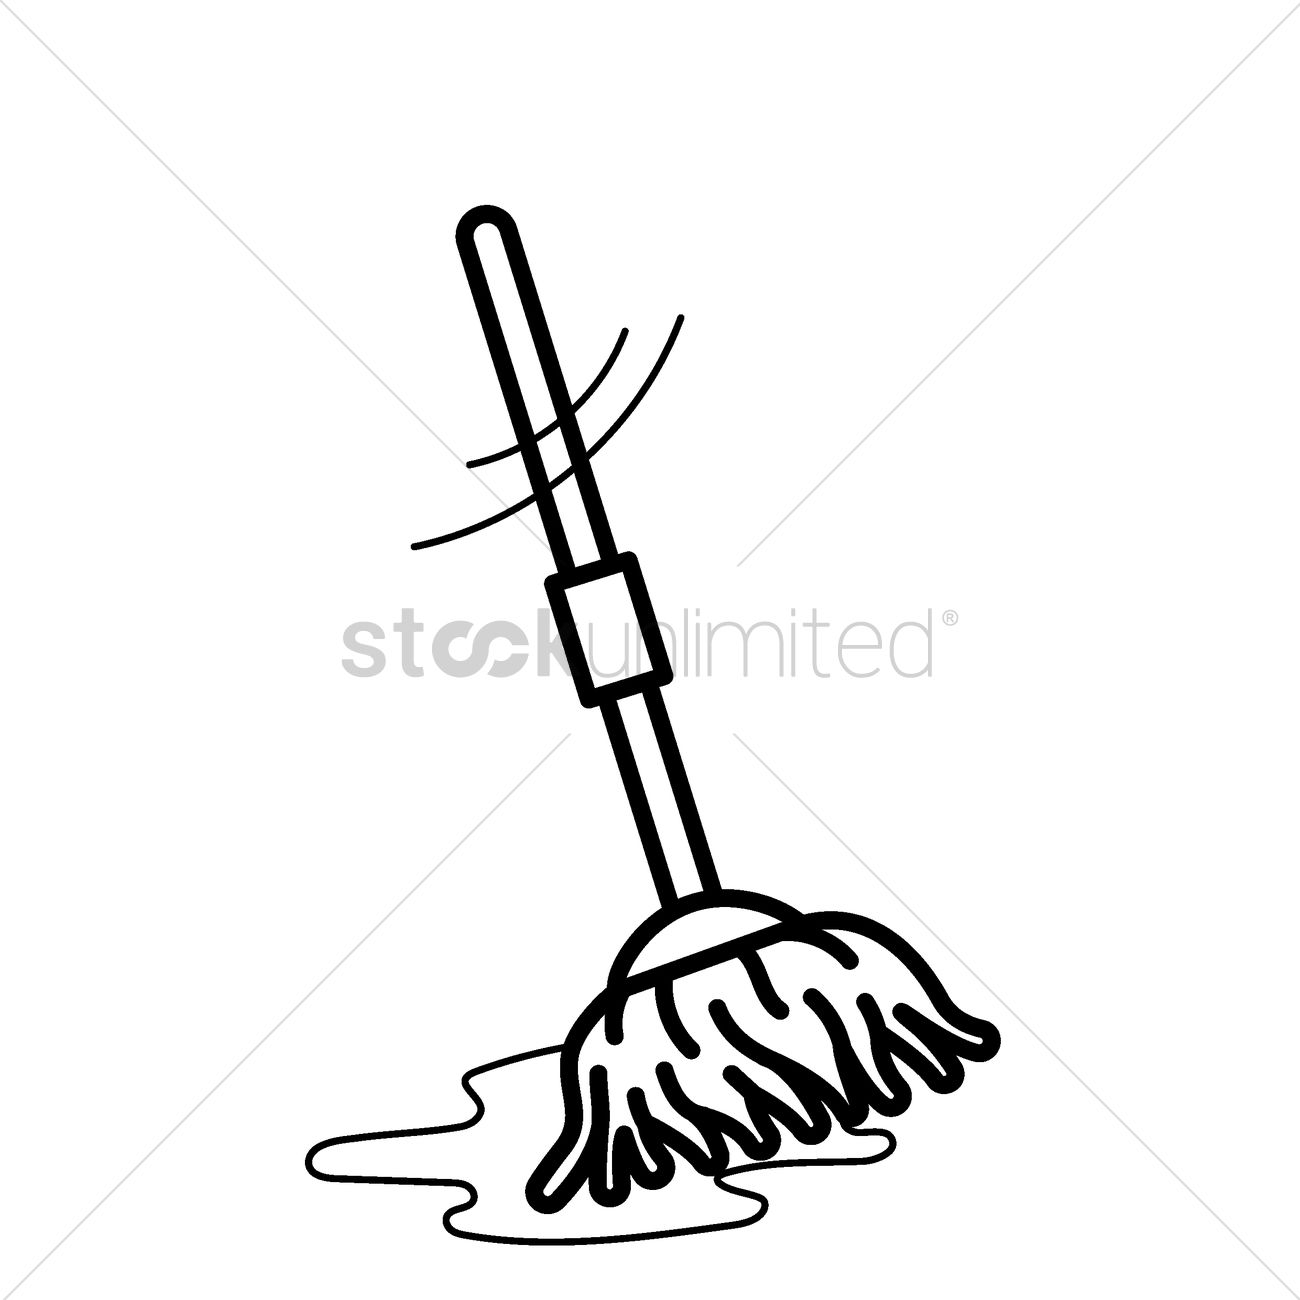 The Best Free Mop Drawing Images Download From 44 Free